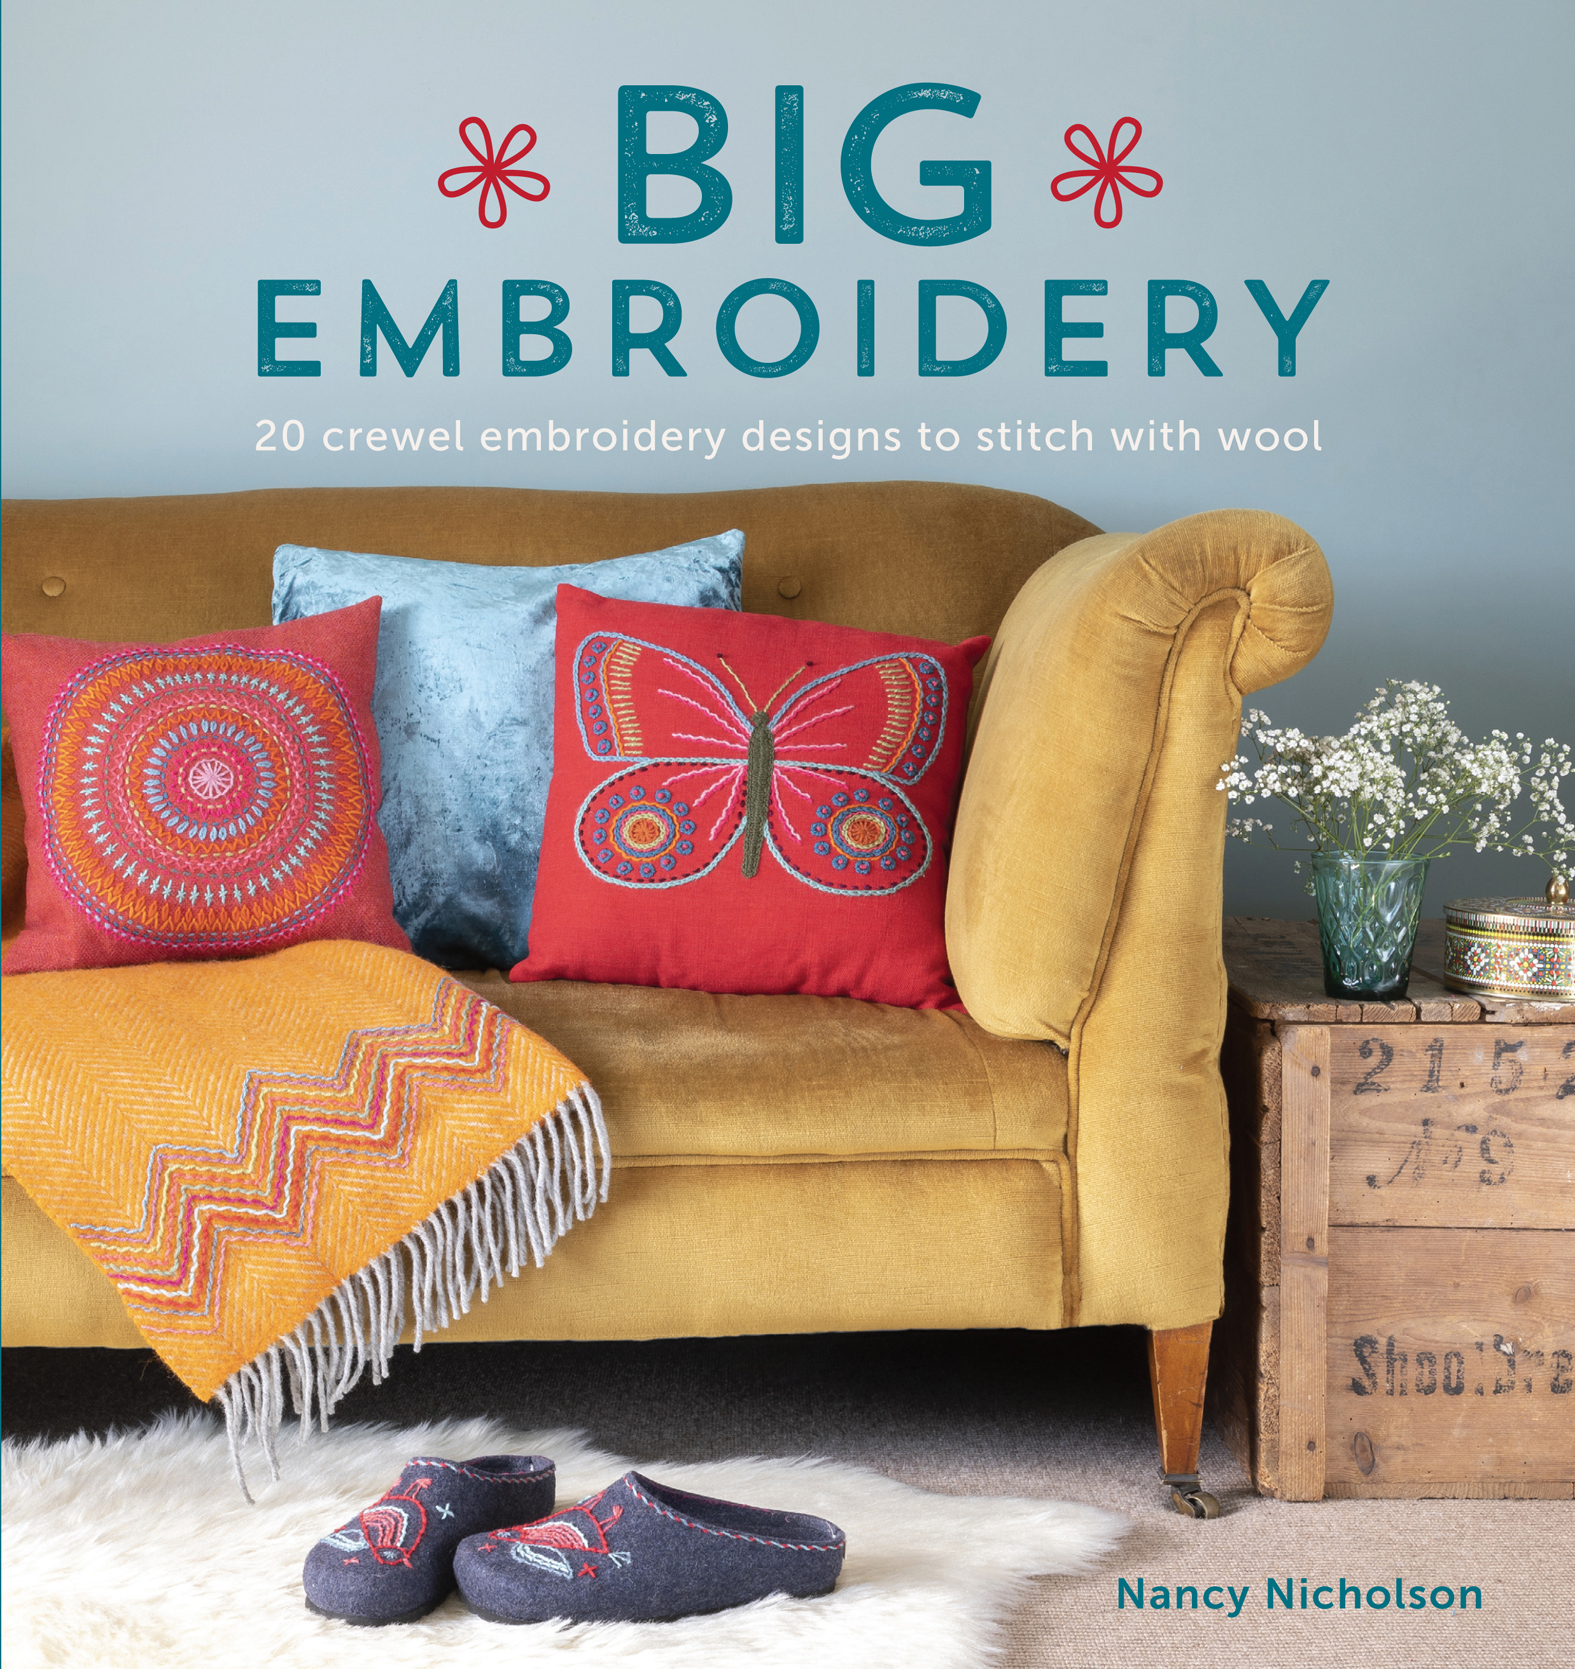 Big Embroidery 20 Crewel Embroidery Designs to Stitch with Wool